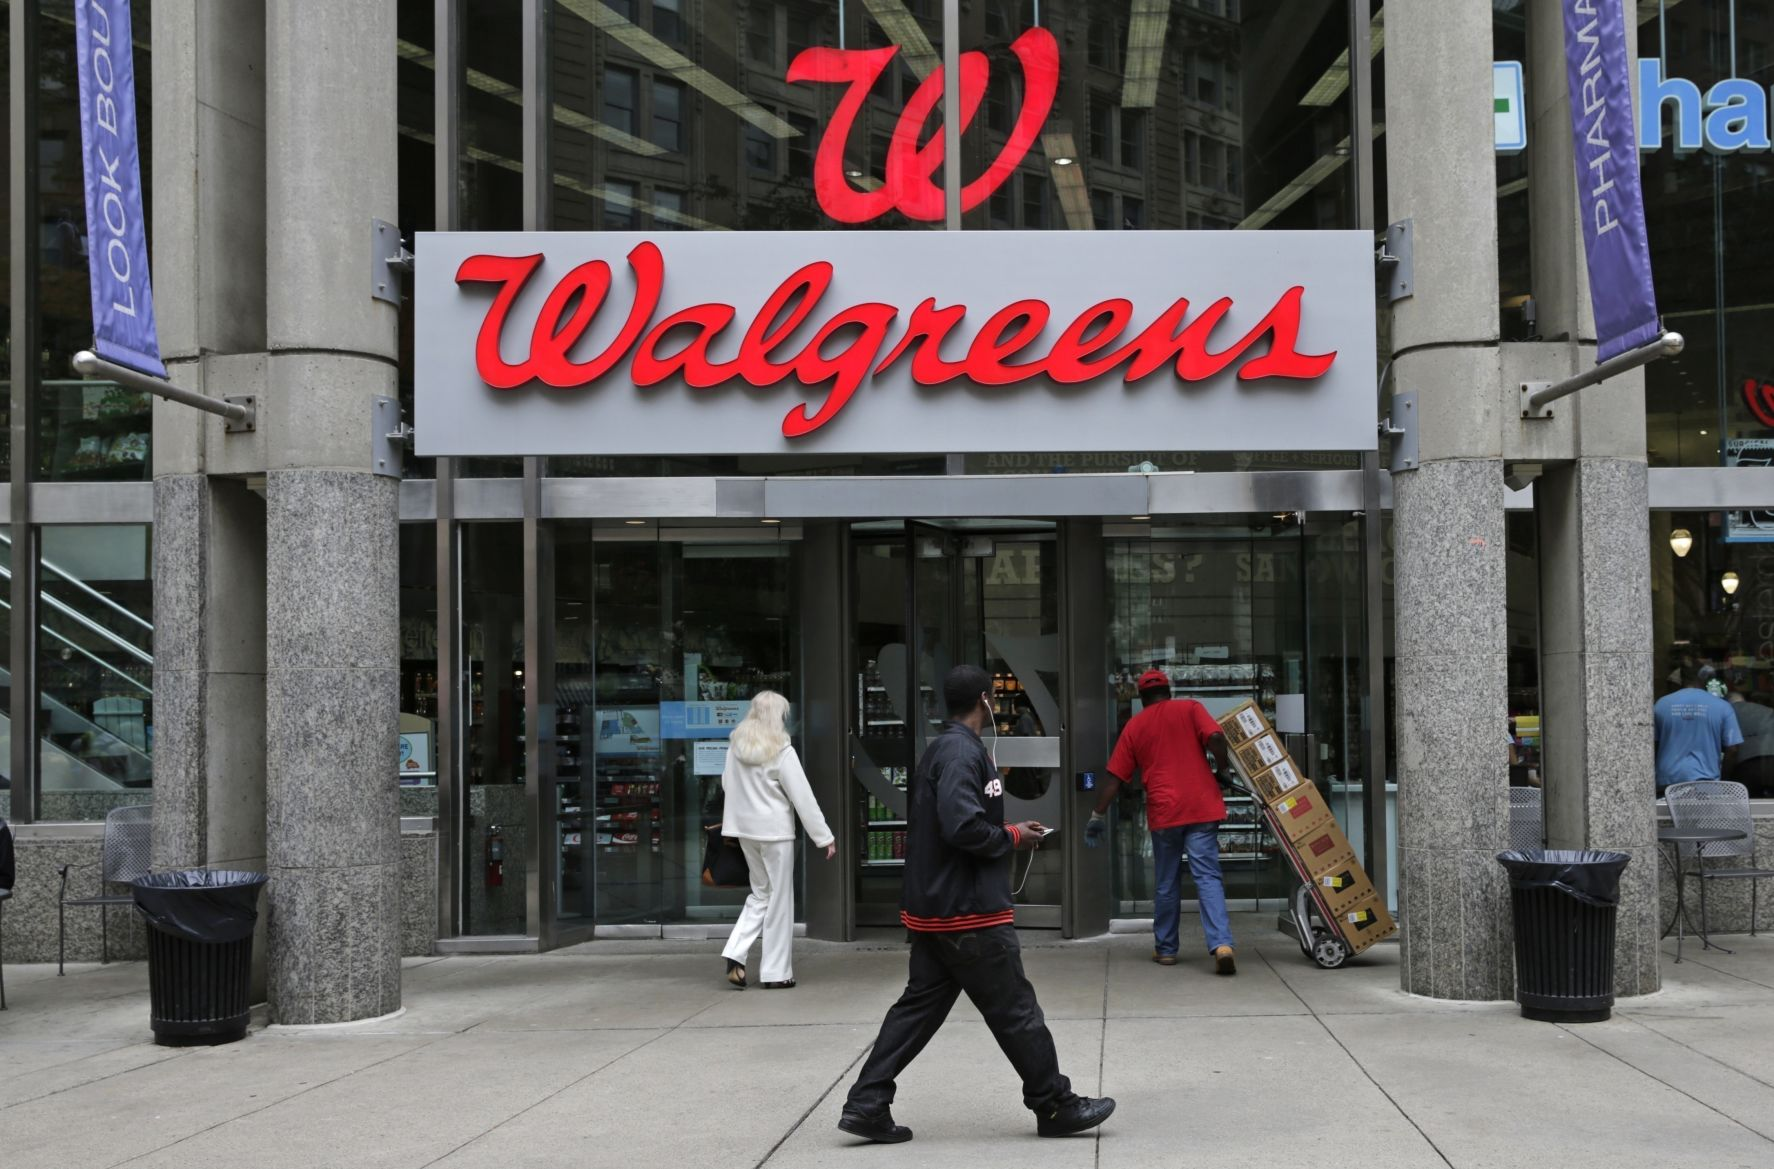 Walgreens, which has already angered store managers by slashing their bonuses, plans more cost-cutting